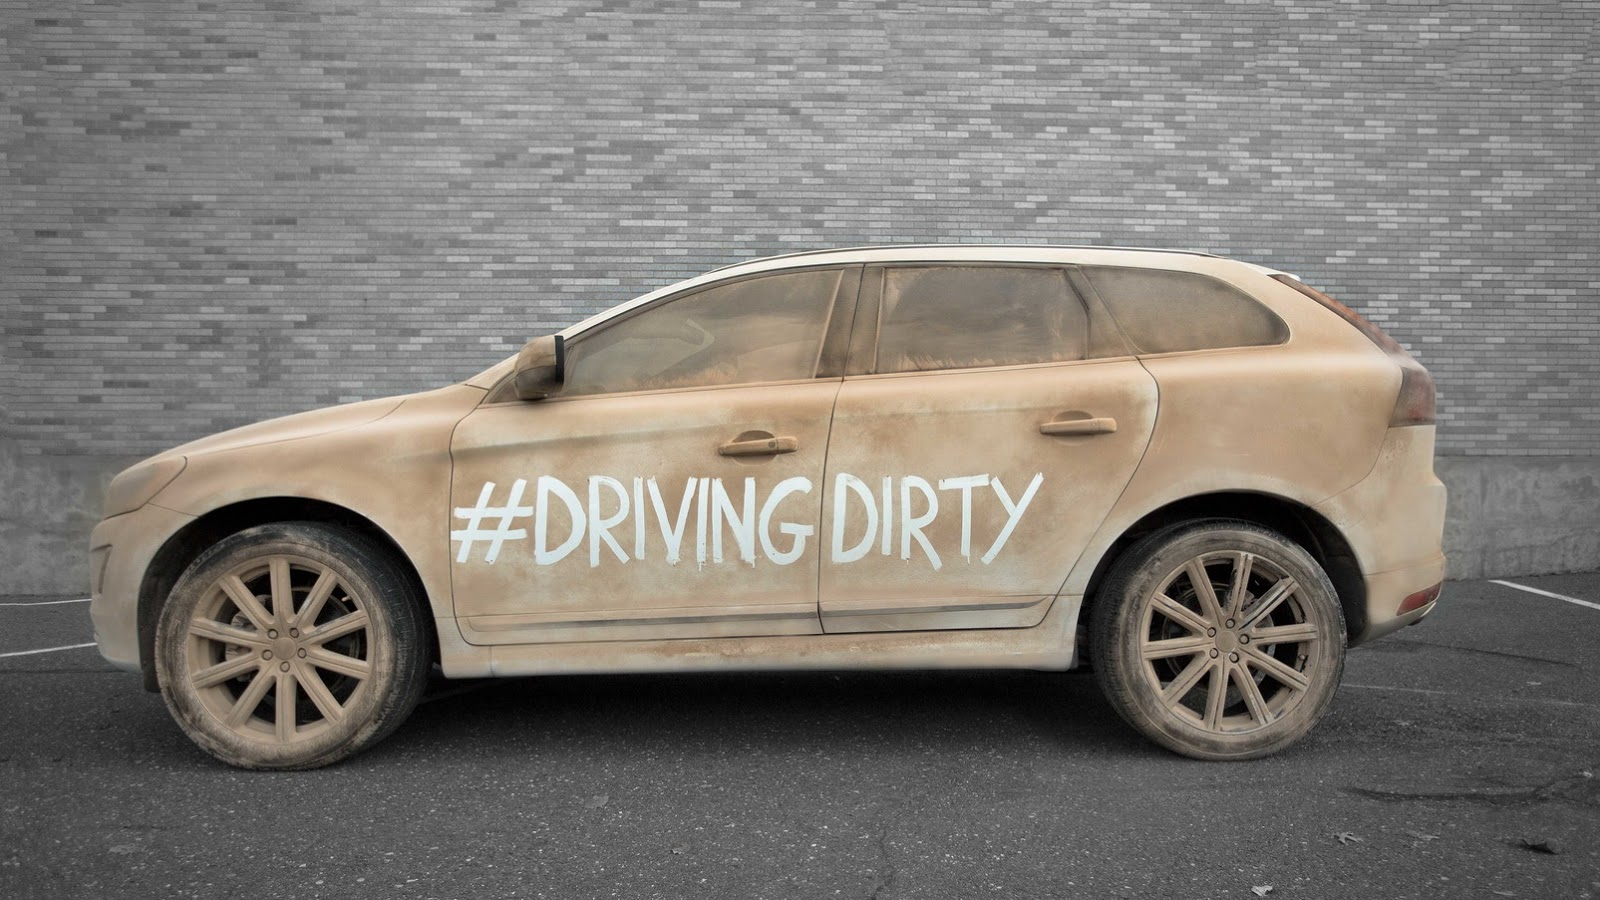 Volvo Wants You To Save Water By Driving Dirty Mercedes